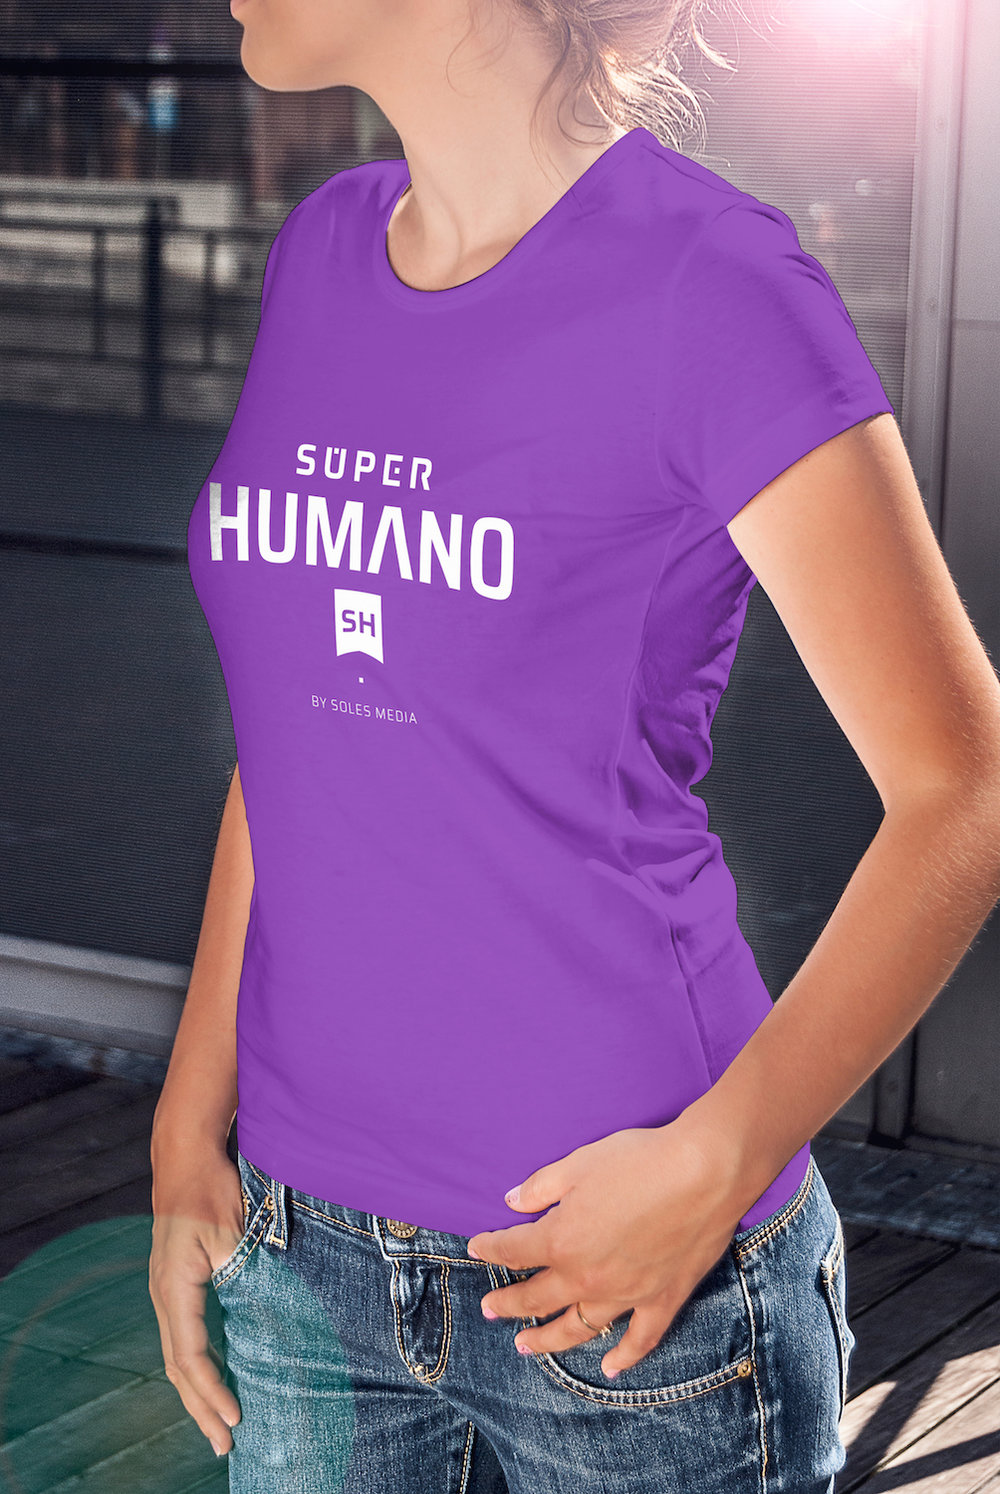 logo-3--shirt-woman.jpg